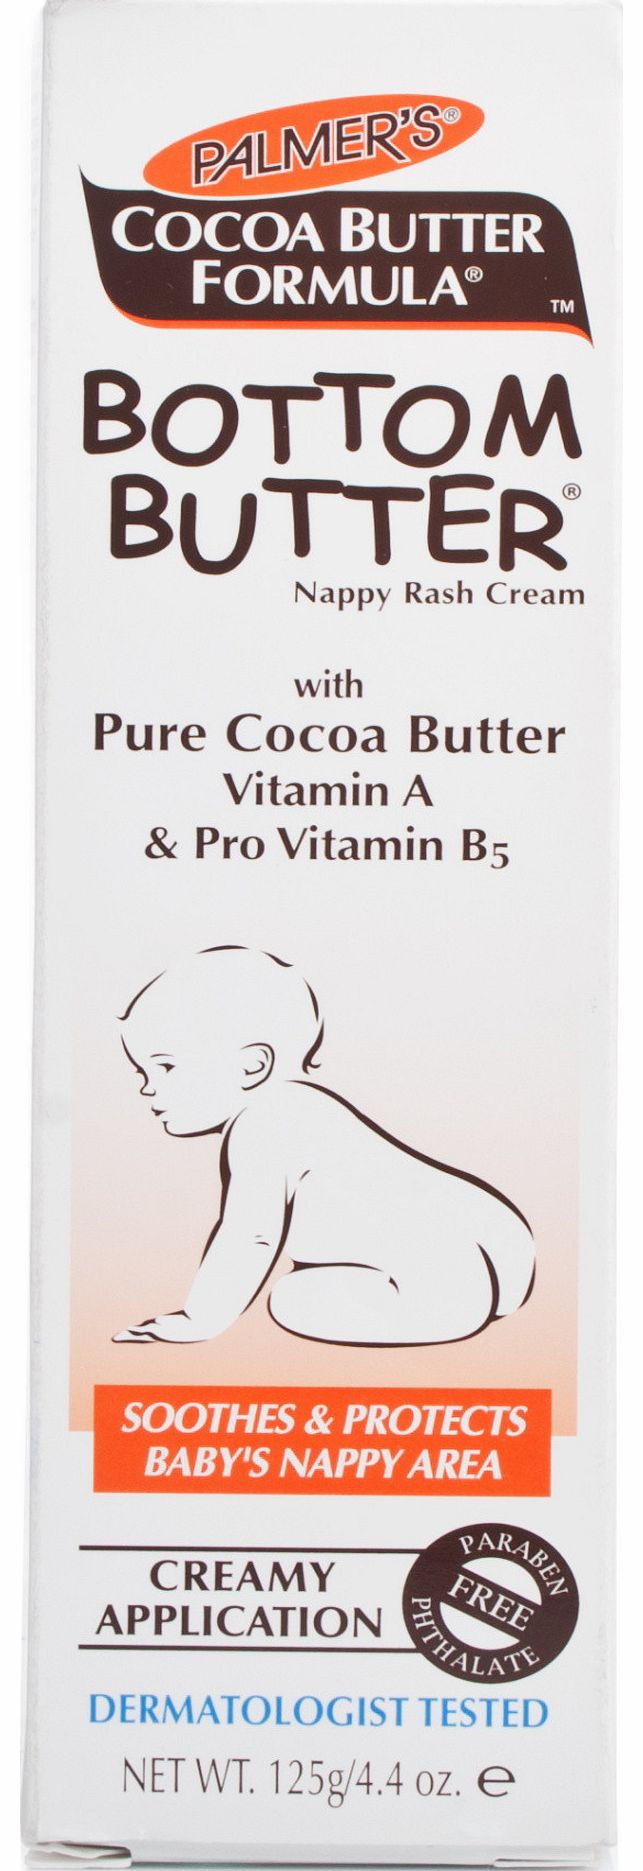 Palmers Cocoa Butter Formula Bottom Nappy Rash